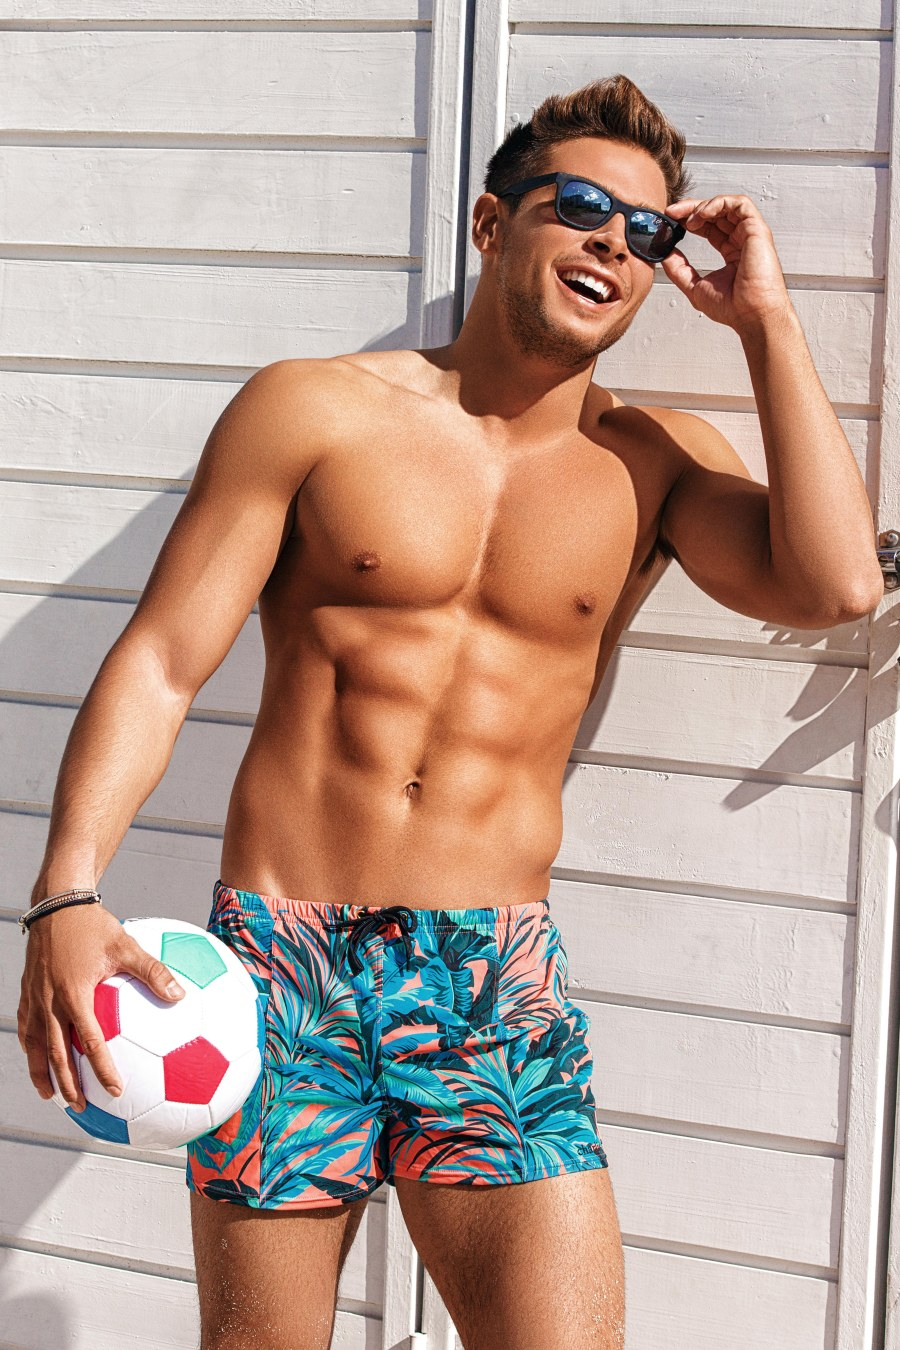 Feel the heat and step inside, here's Andrea Denver posing delightfully under the rays of sun captured by talented Alex Jackson. Andrea is with Wilhelmina Miami.